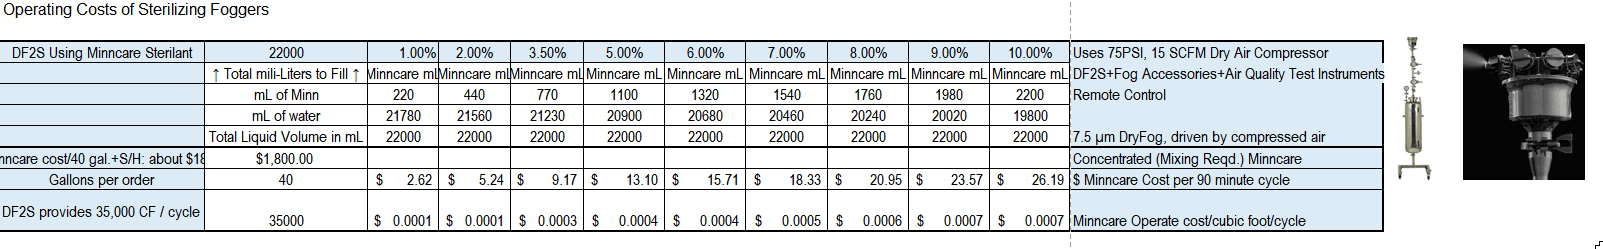 DF2S Operation Costs